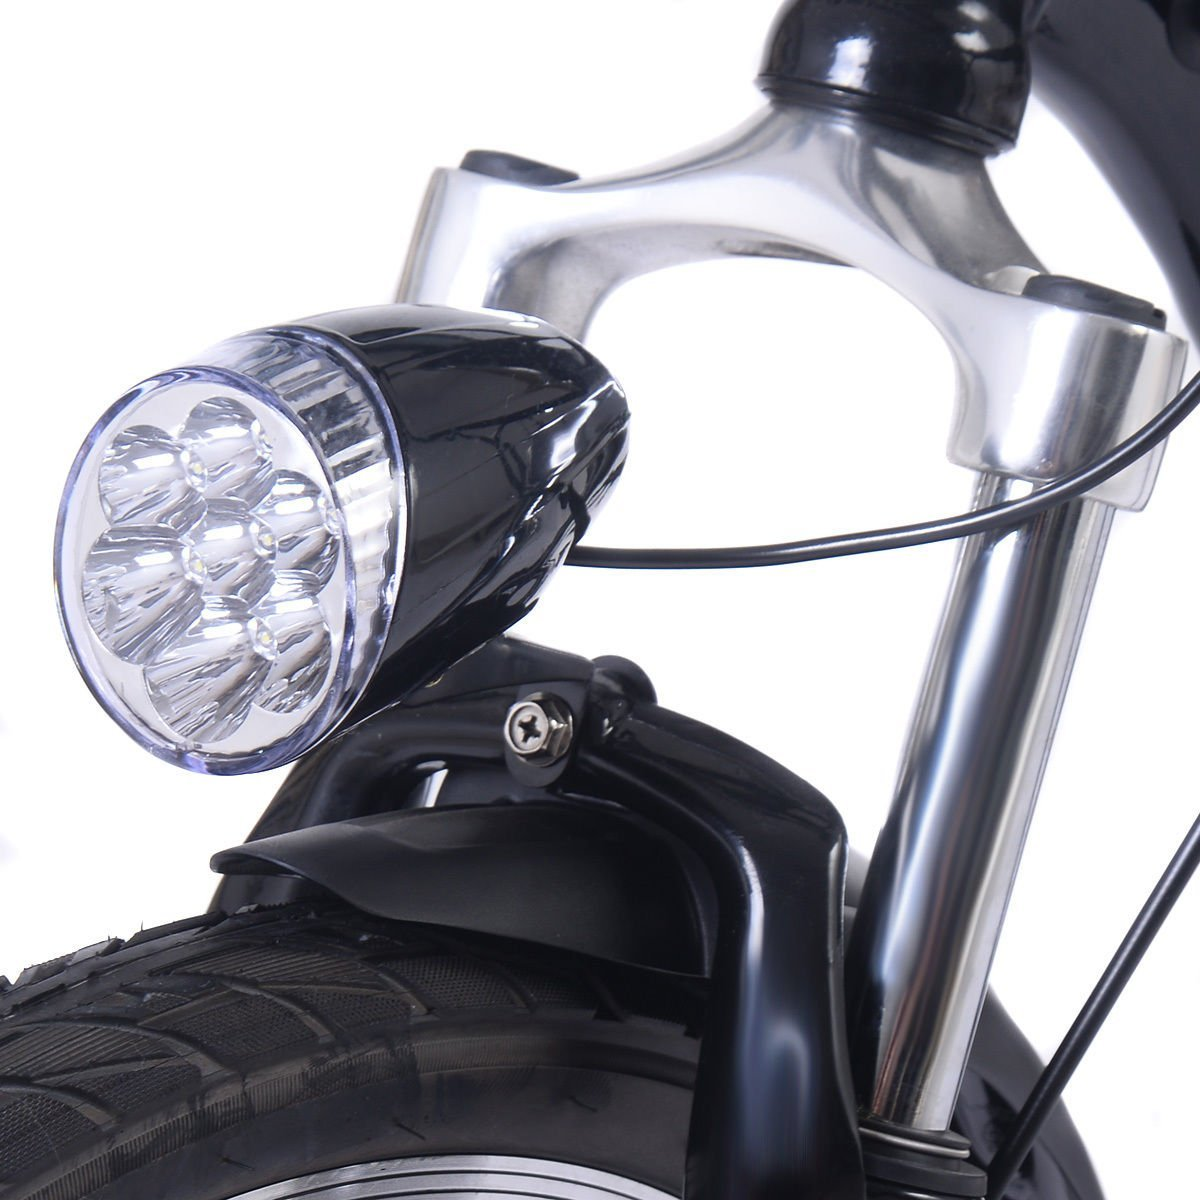 Goplus 26 Quot 250w Electric Bicycle Gearscoot